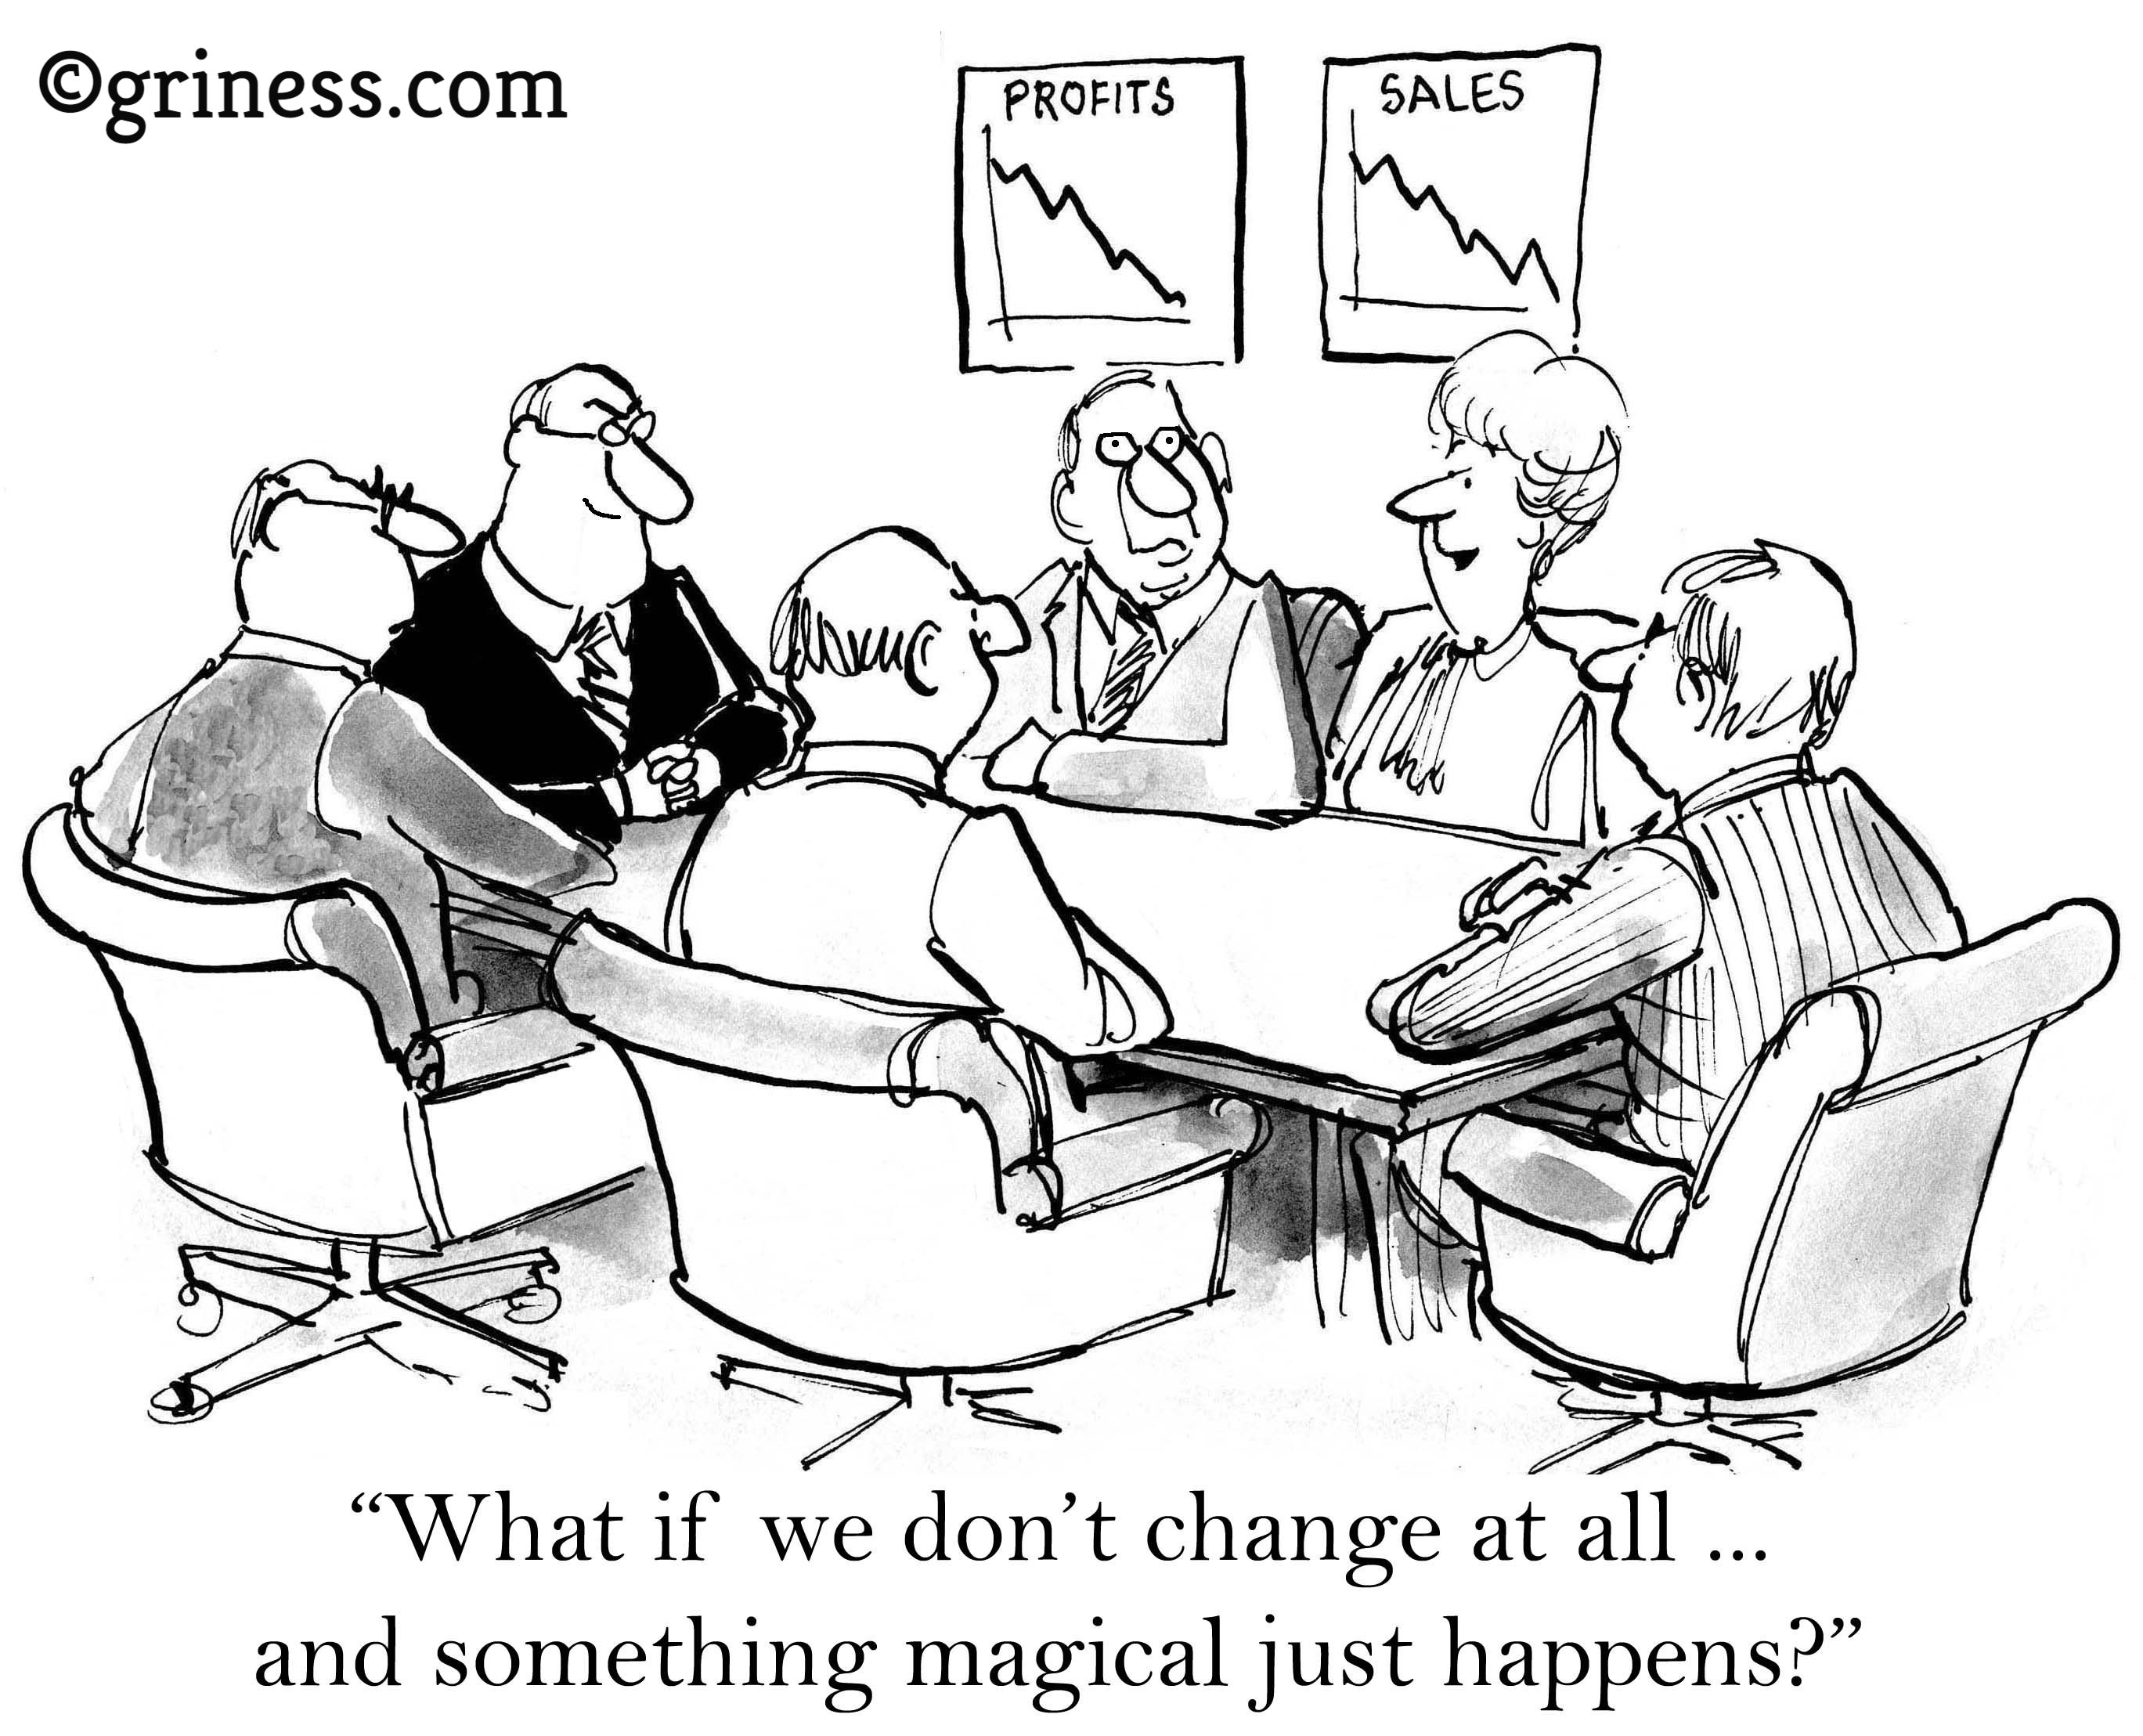 what if dont change at all and something magical just happen griness com business cartoons free corporate humor